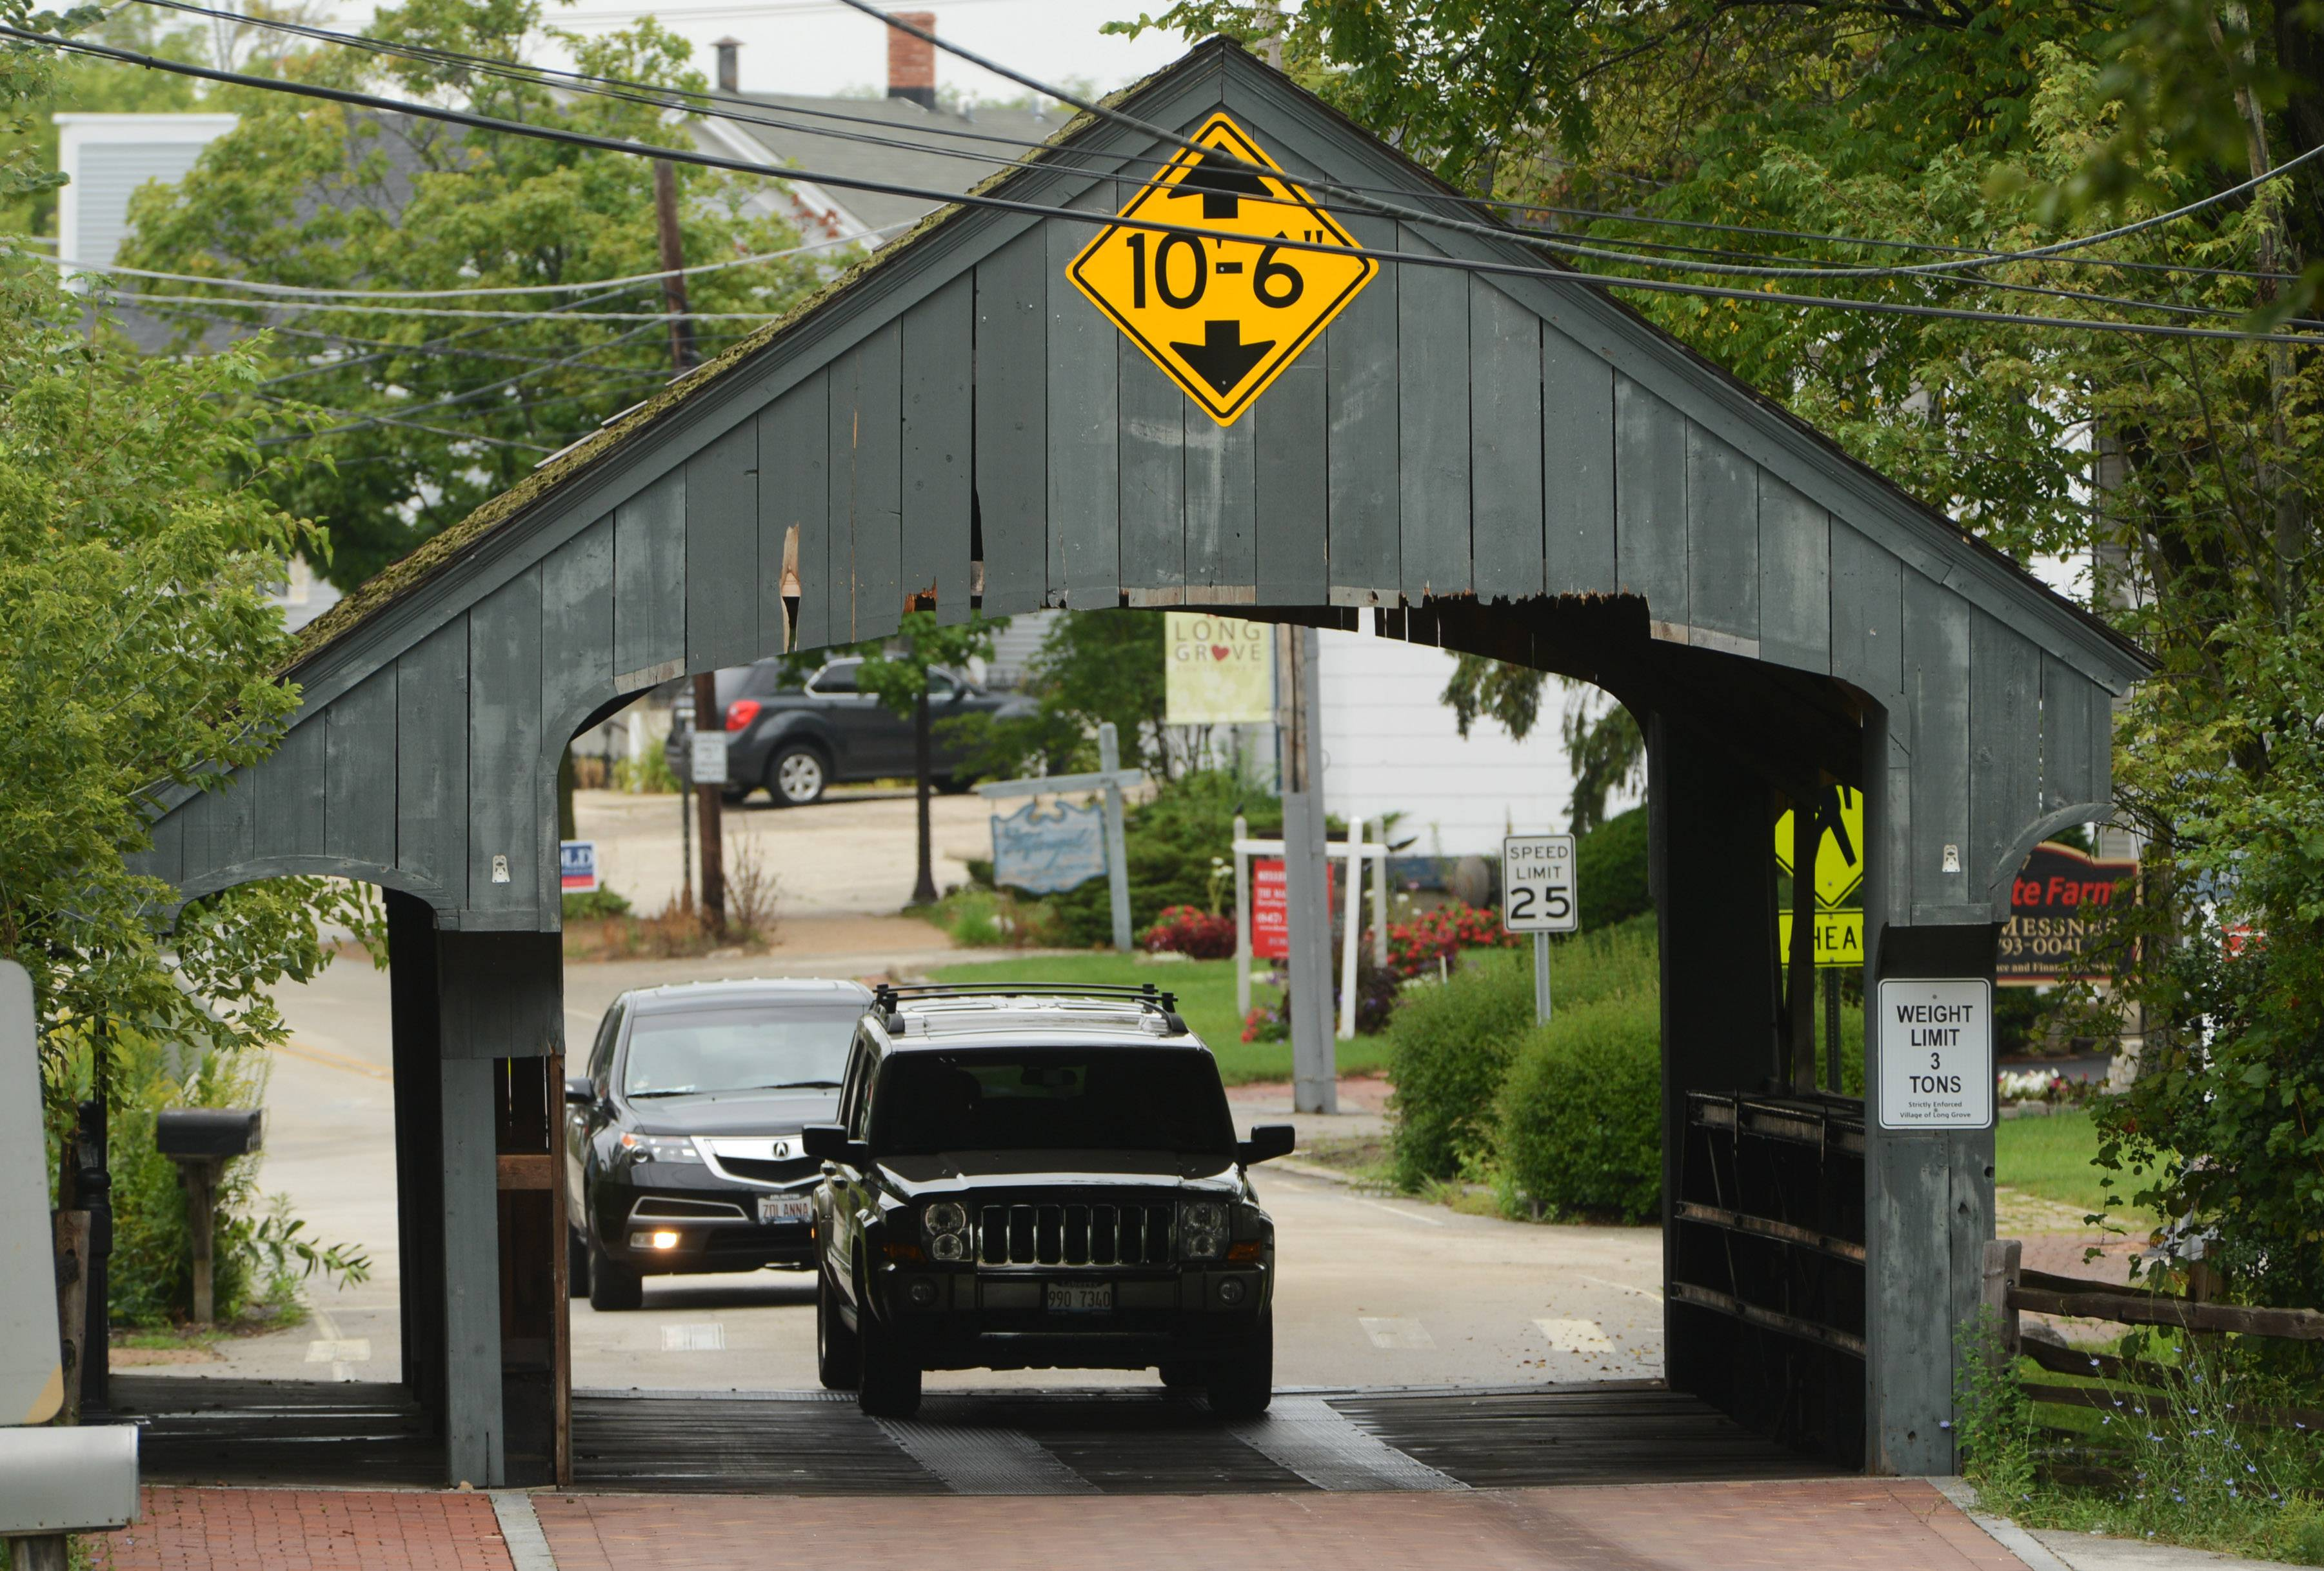 Long Grove bridge supporters to lobby for national landmark status